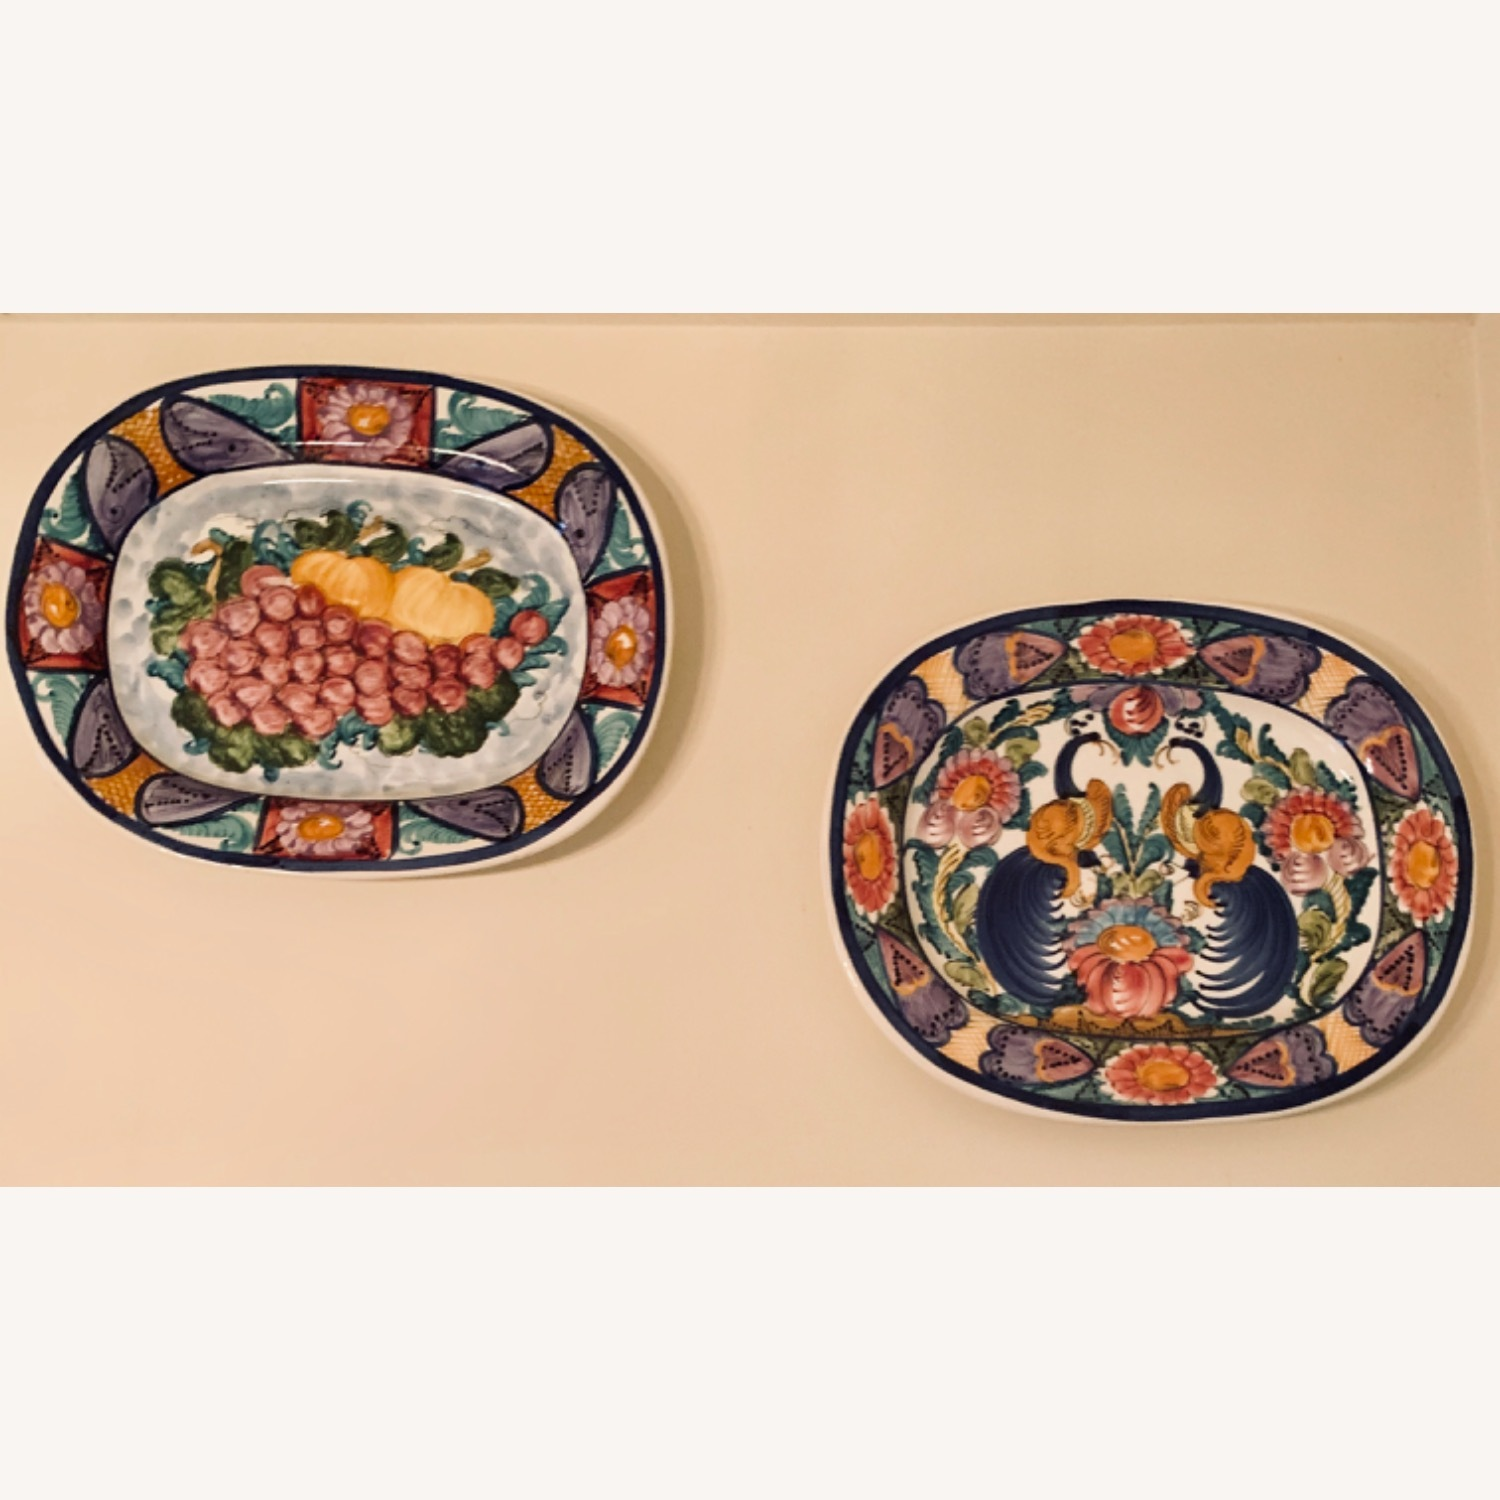 10 Greek Hand painted Platters and Soup Tureen - image-2